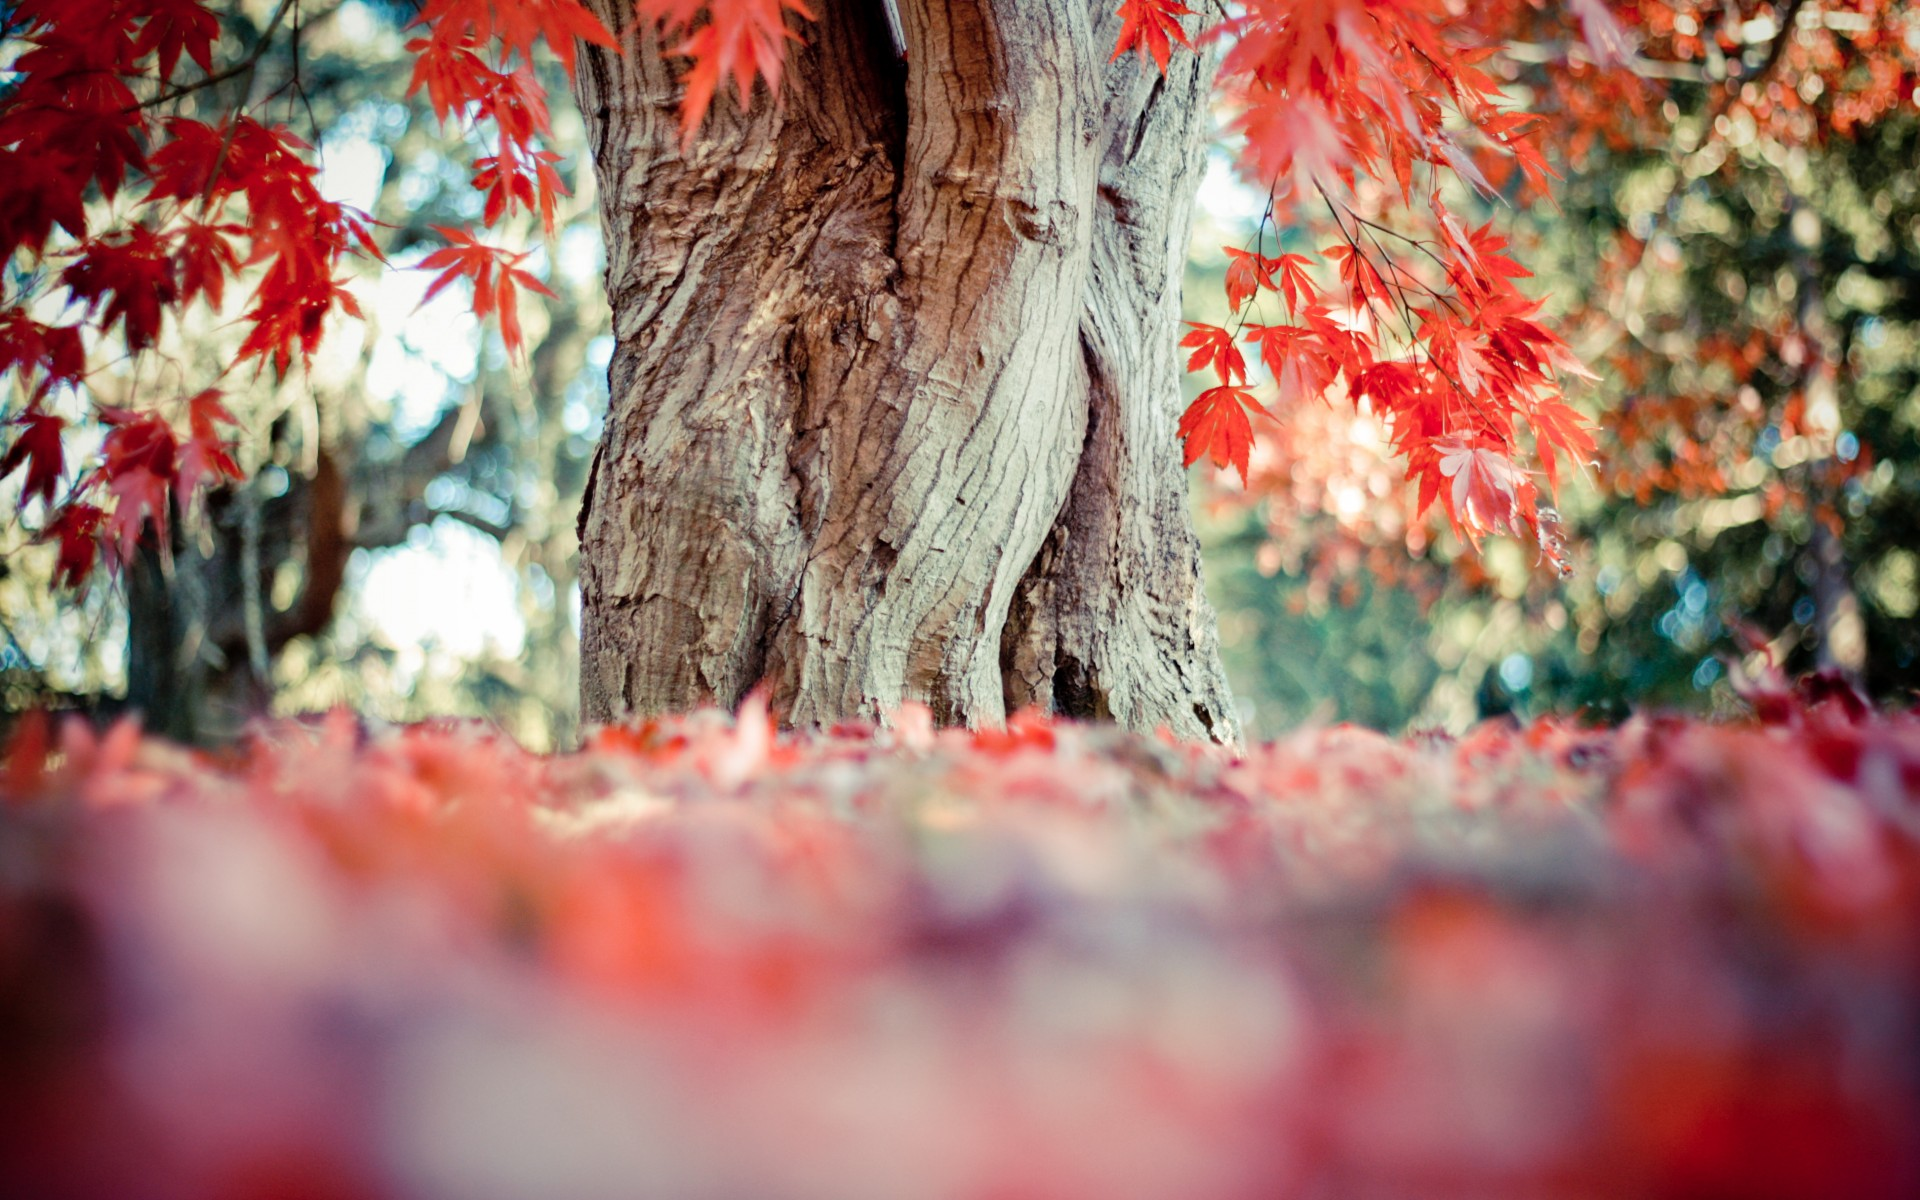 tree trunks, colorful ground, painted leaves